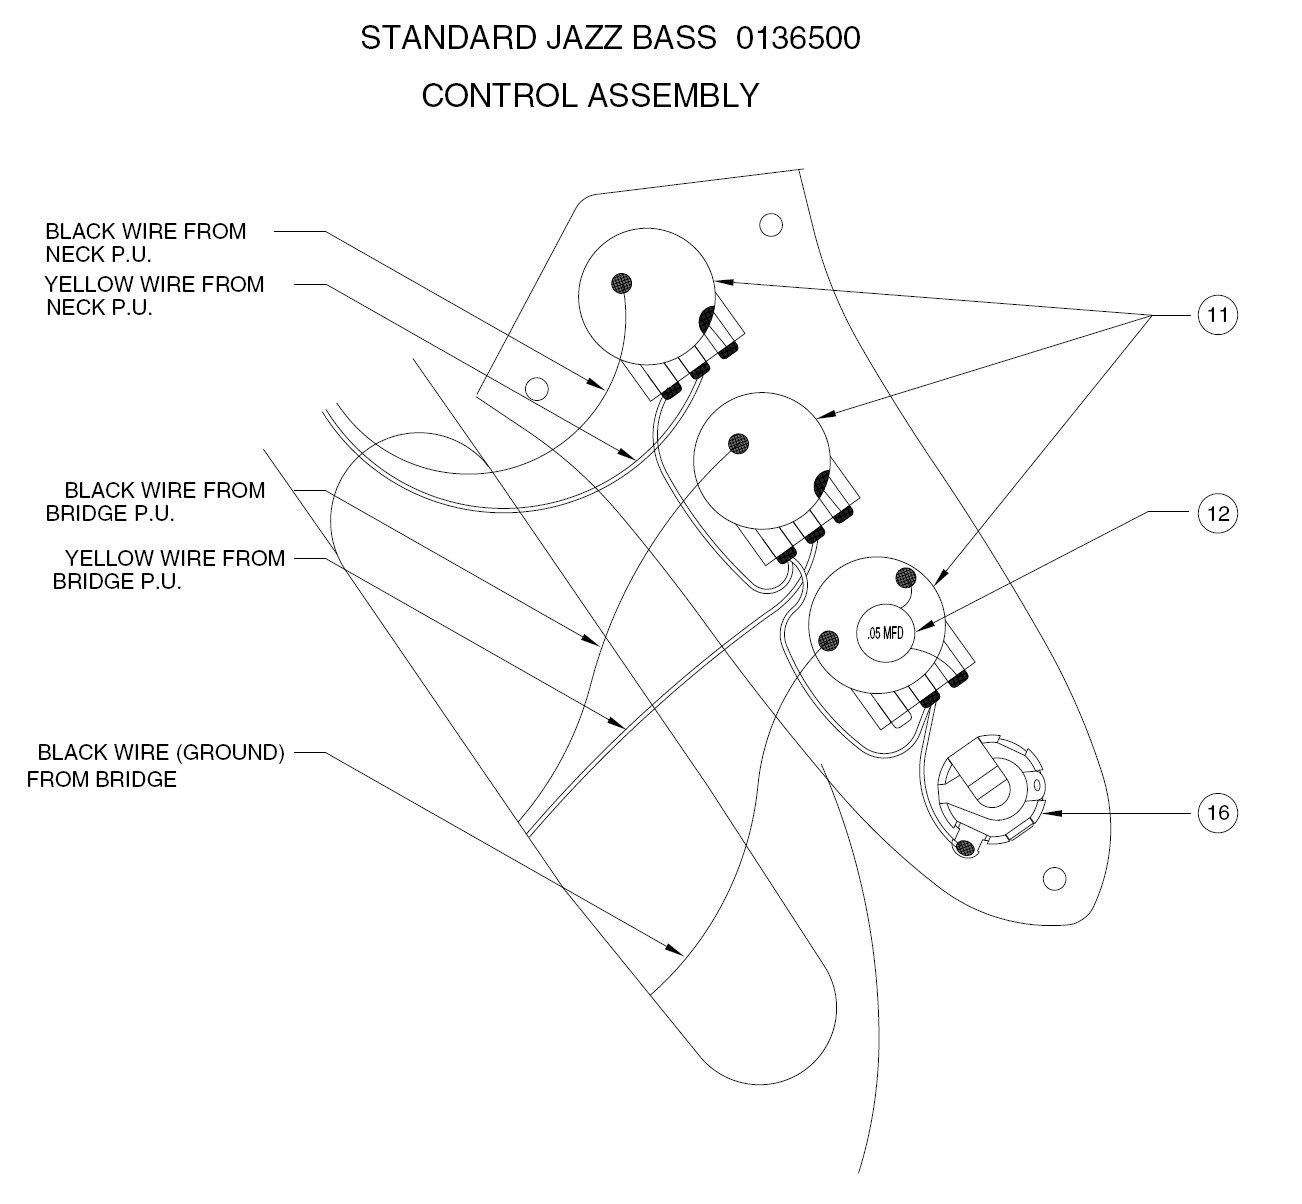 Standard P Bass Wiring Diagram | Wiring Diagram - Fender Jazz Bass Wiring Diagram